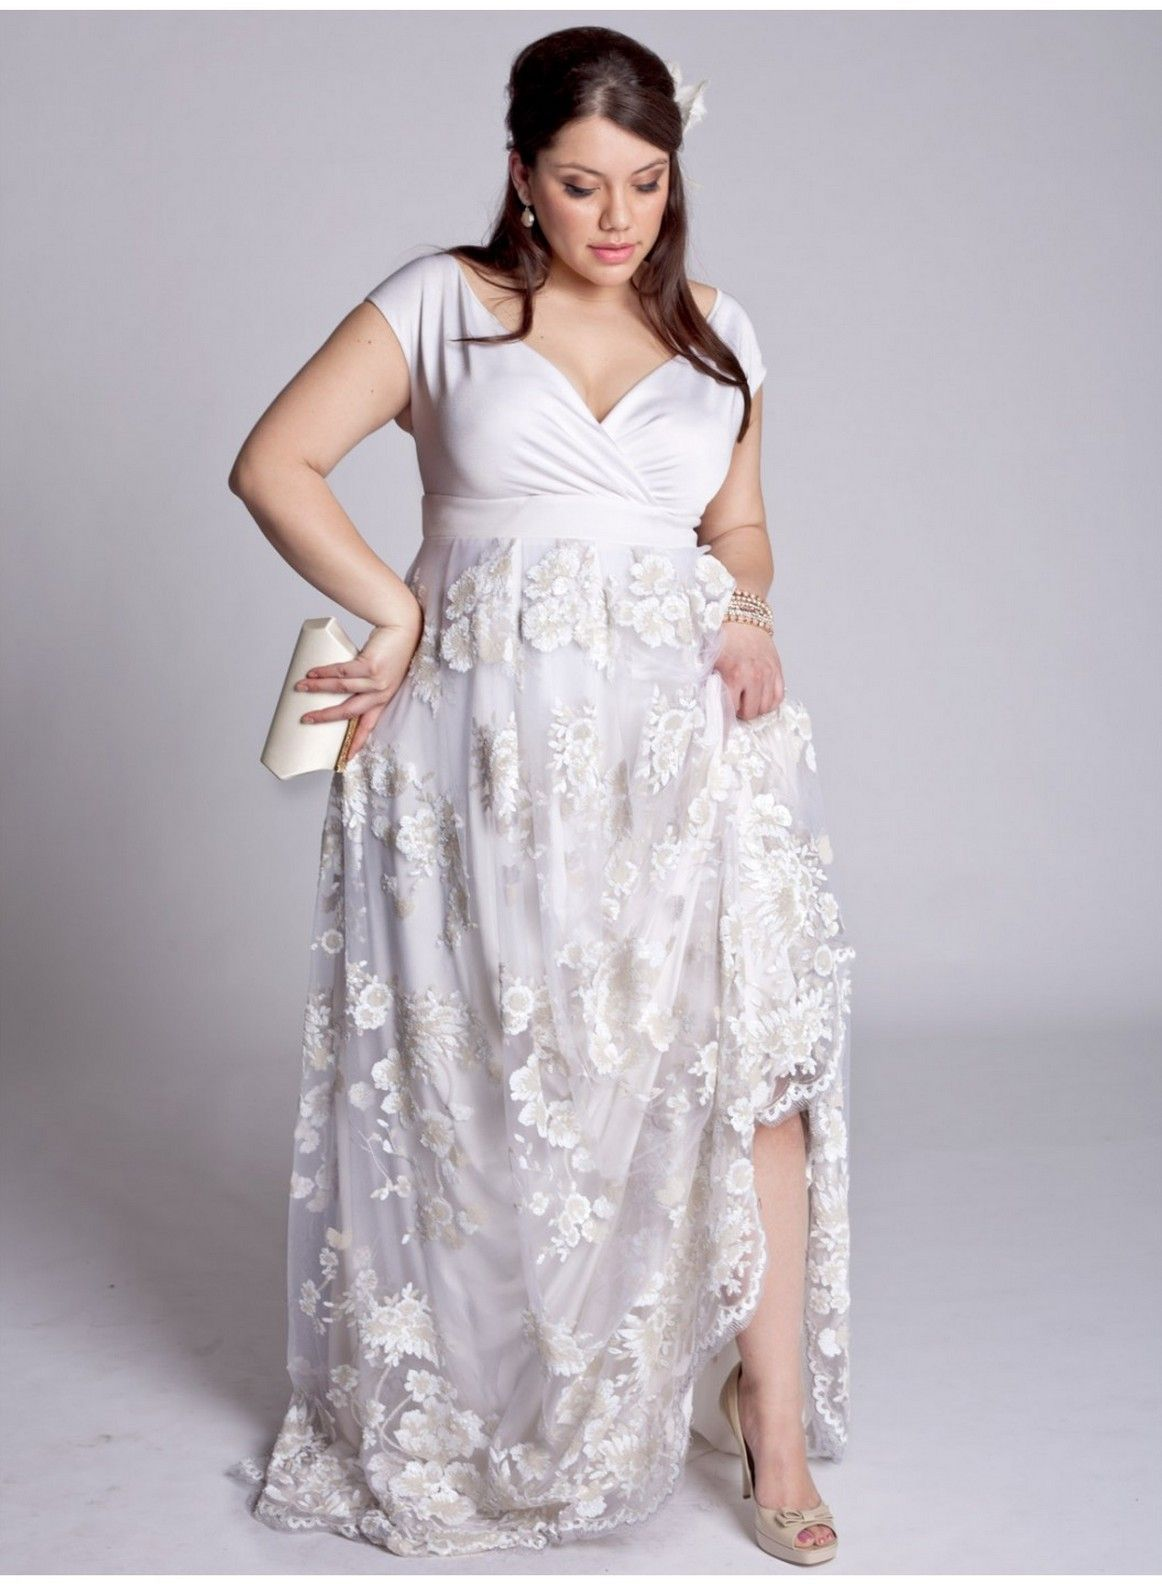 Wedding dresses for plus size brides  short cocktail wedding dresses lace sleeves  Google Search